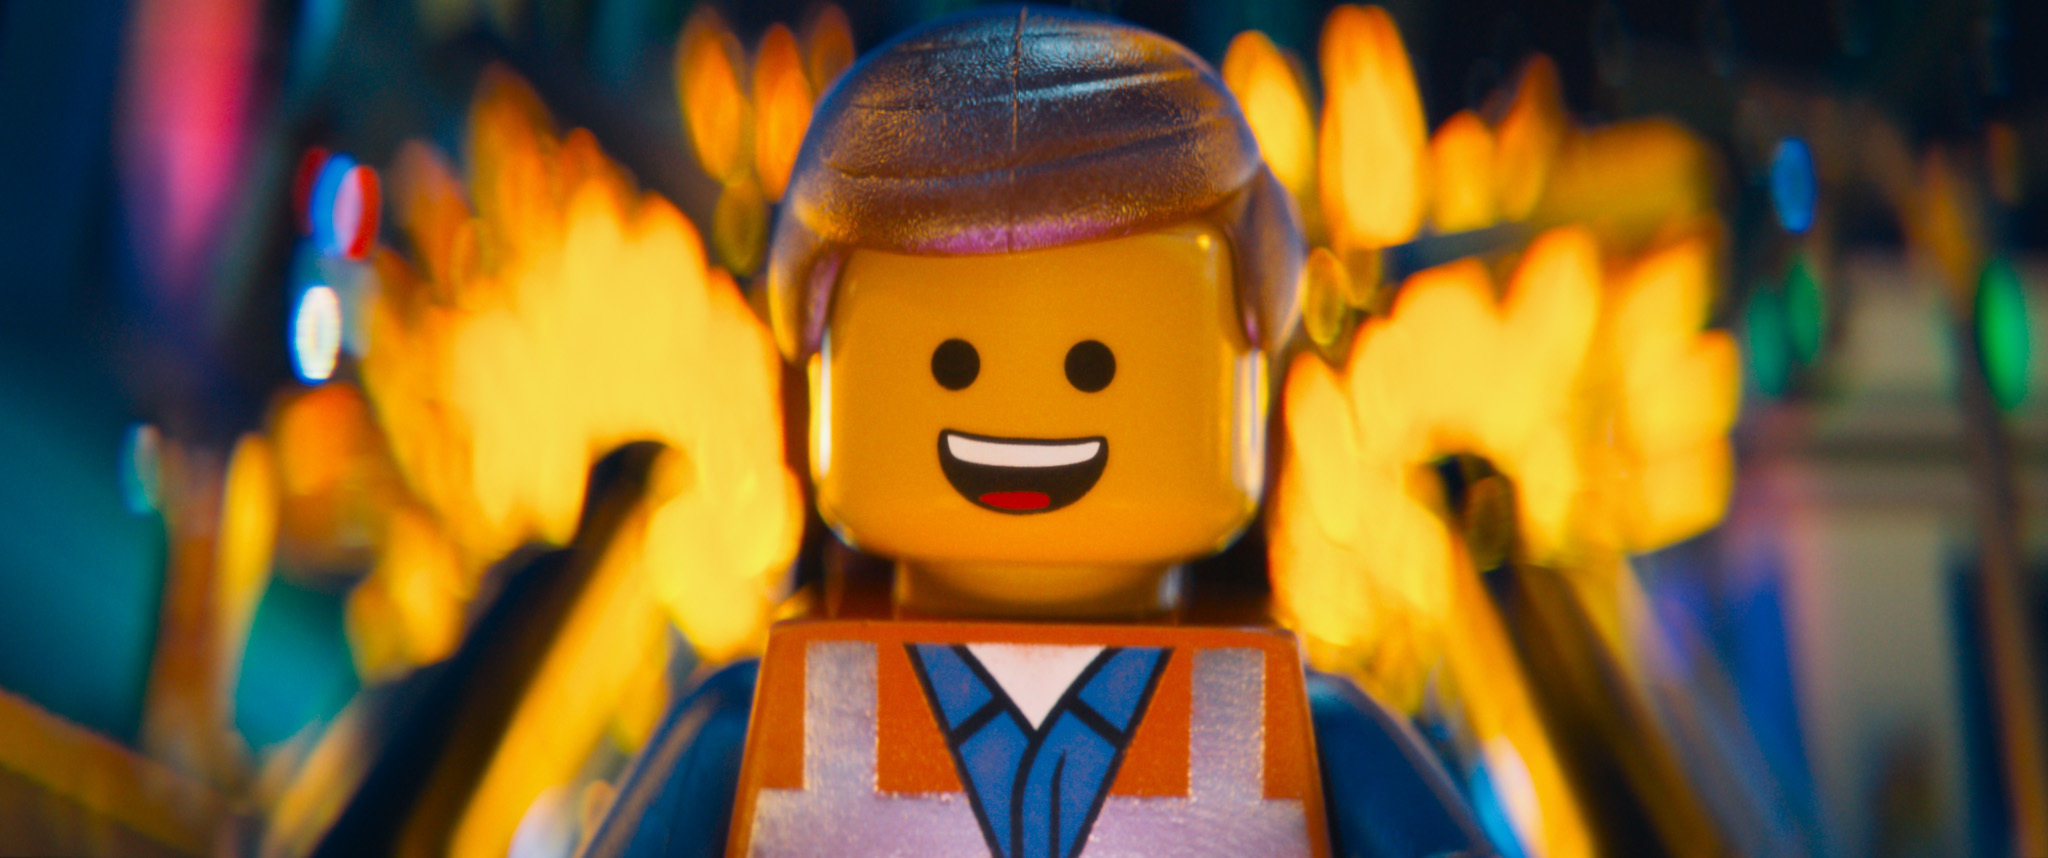 The Lego Movie Review – A real block buster.